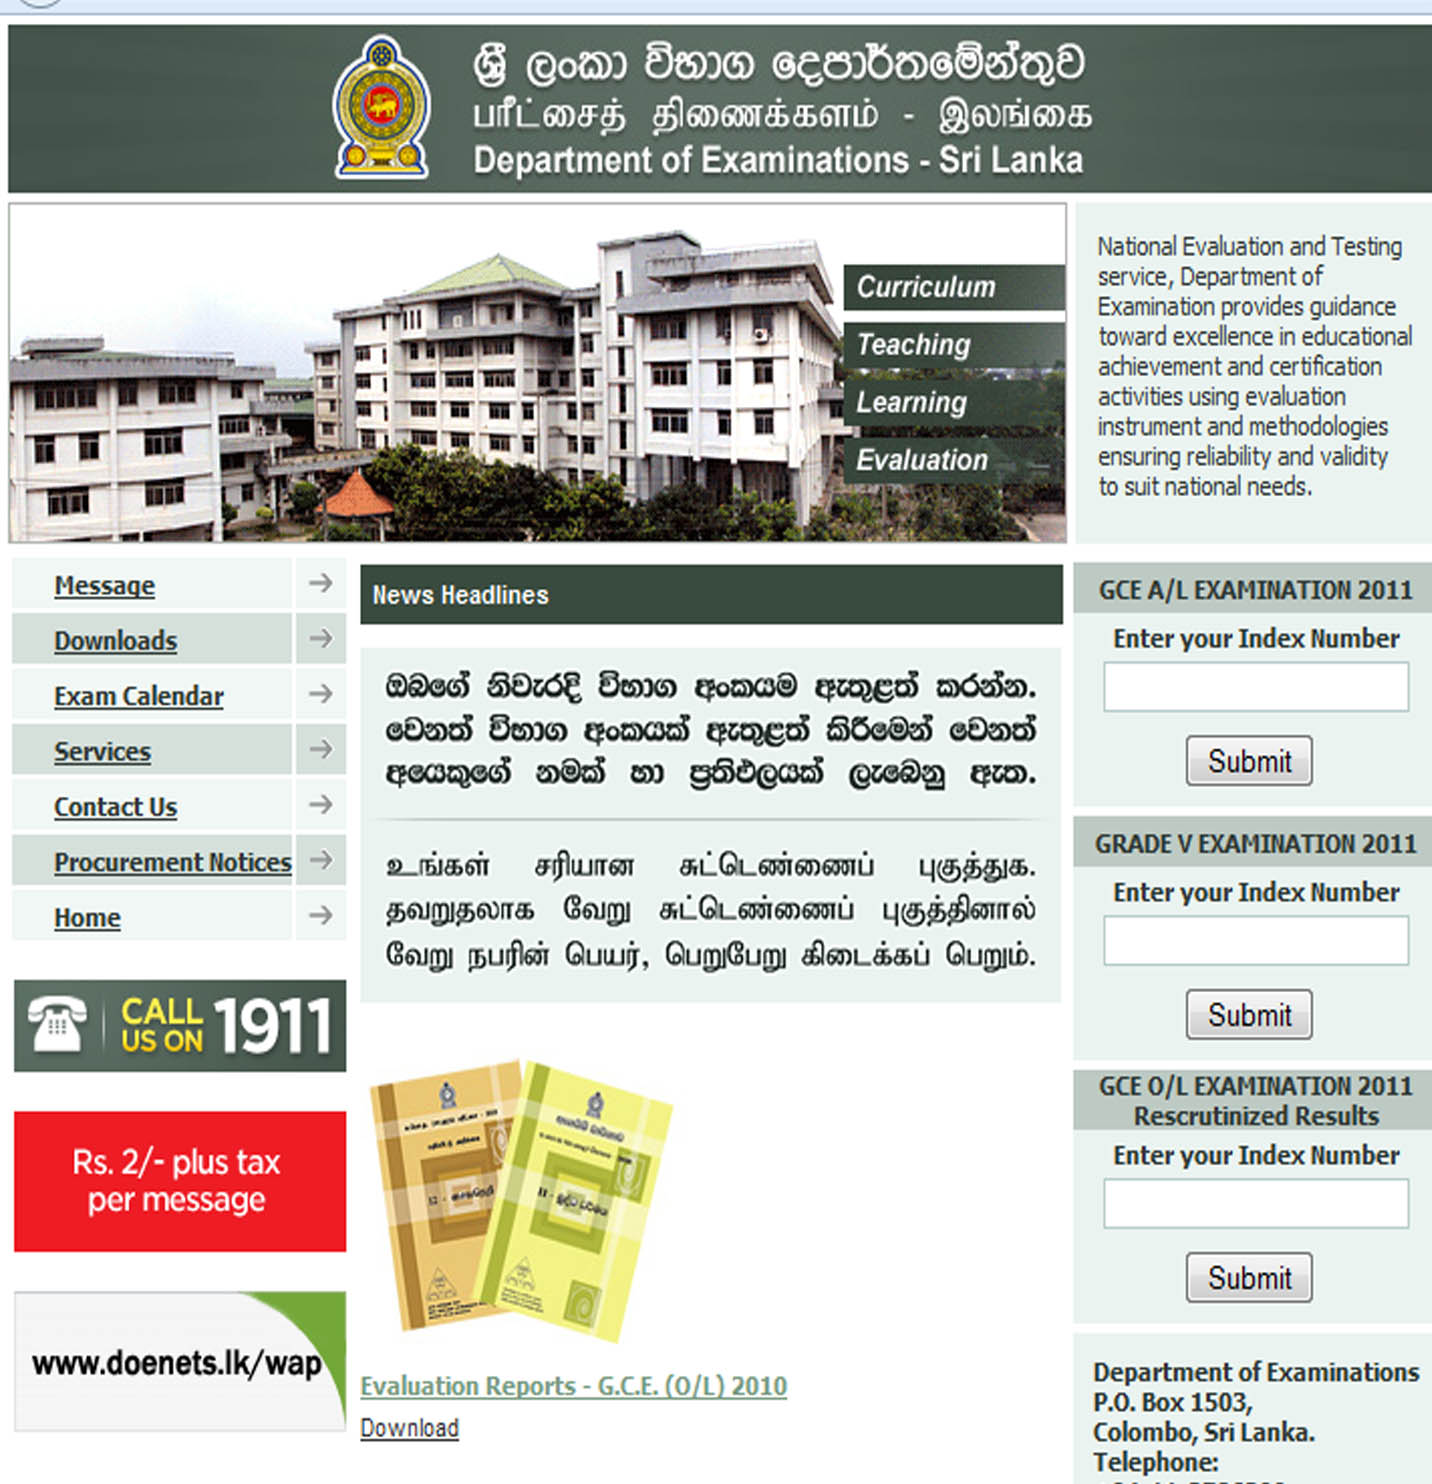 Sri Lanka GCE A/L O/L Grade V Exam Results Department